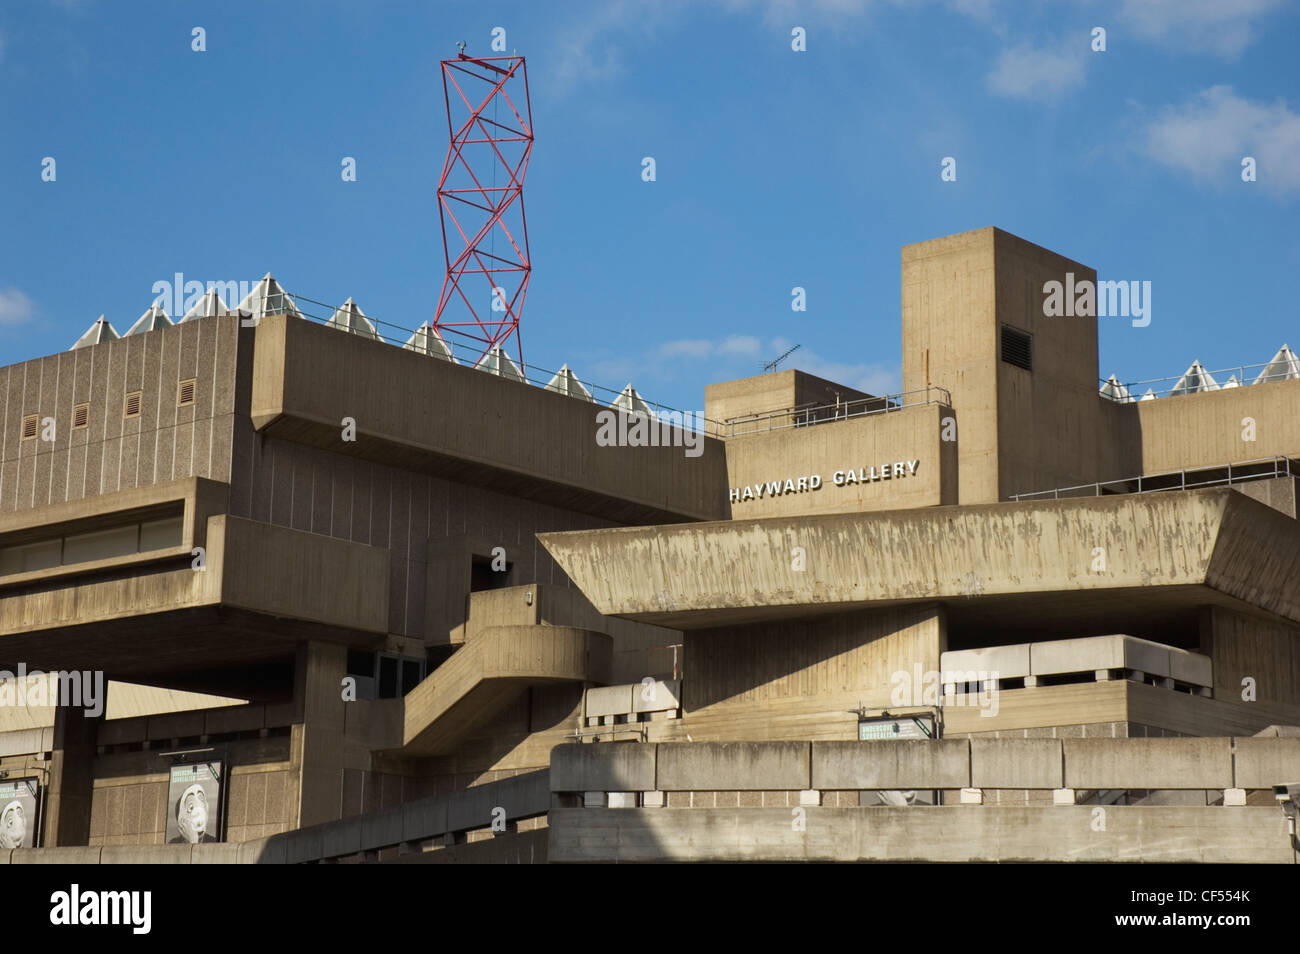 The Hayward Gallery and part of the South Bank complex of concrete buildings. Stock Photo